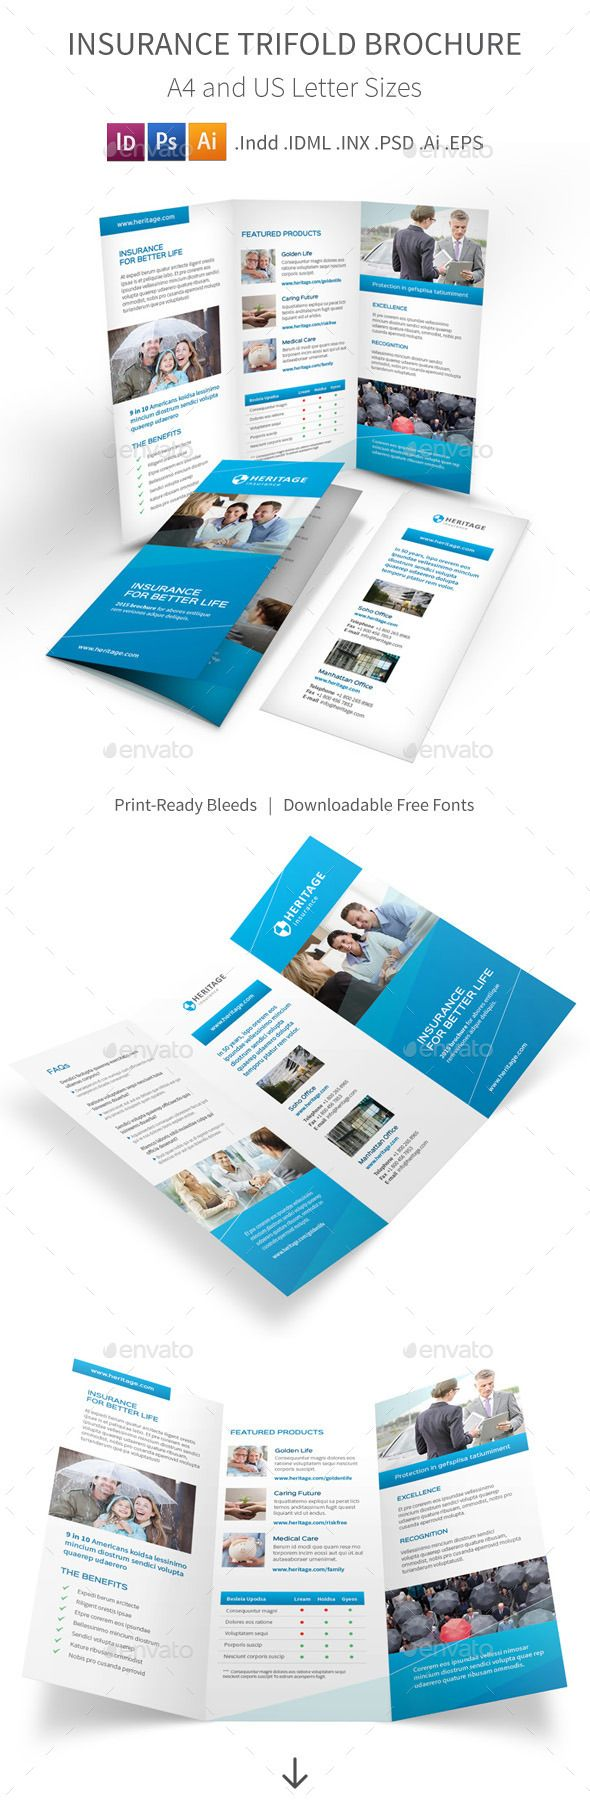 Insurance Company Trifold Brochure Template #design Download: http://graphicriver.net/item/insurance-company-trifold-brochure/12006358?ref=ksioks